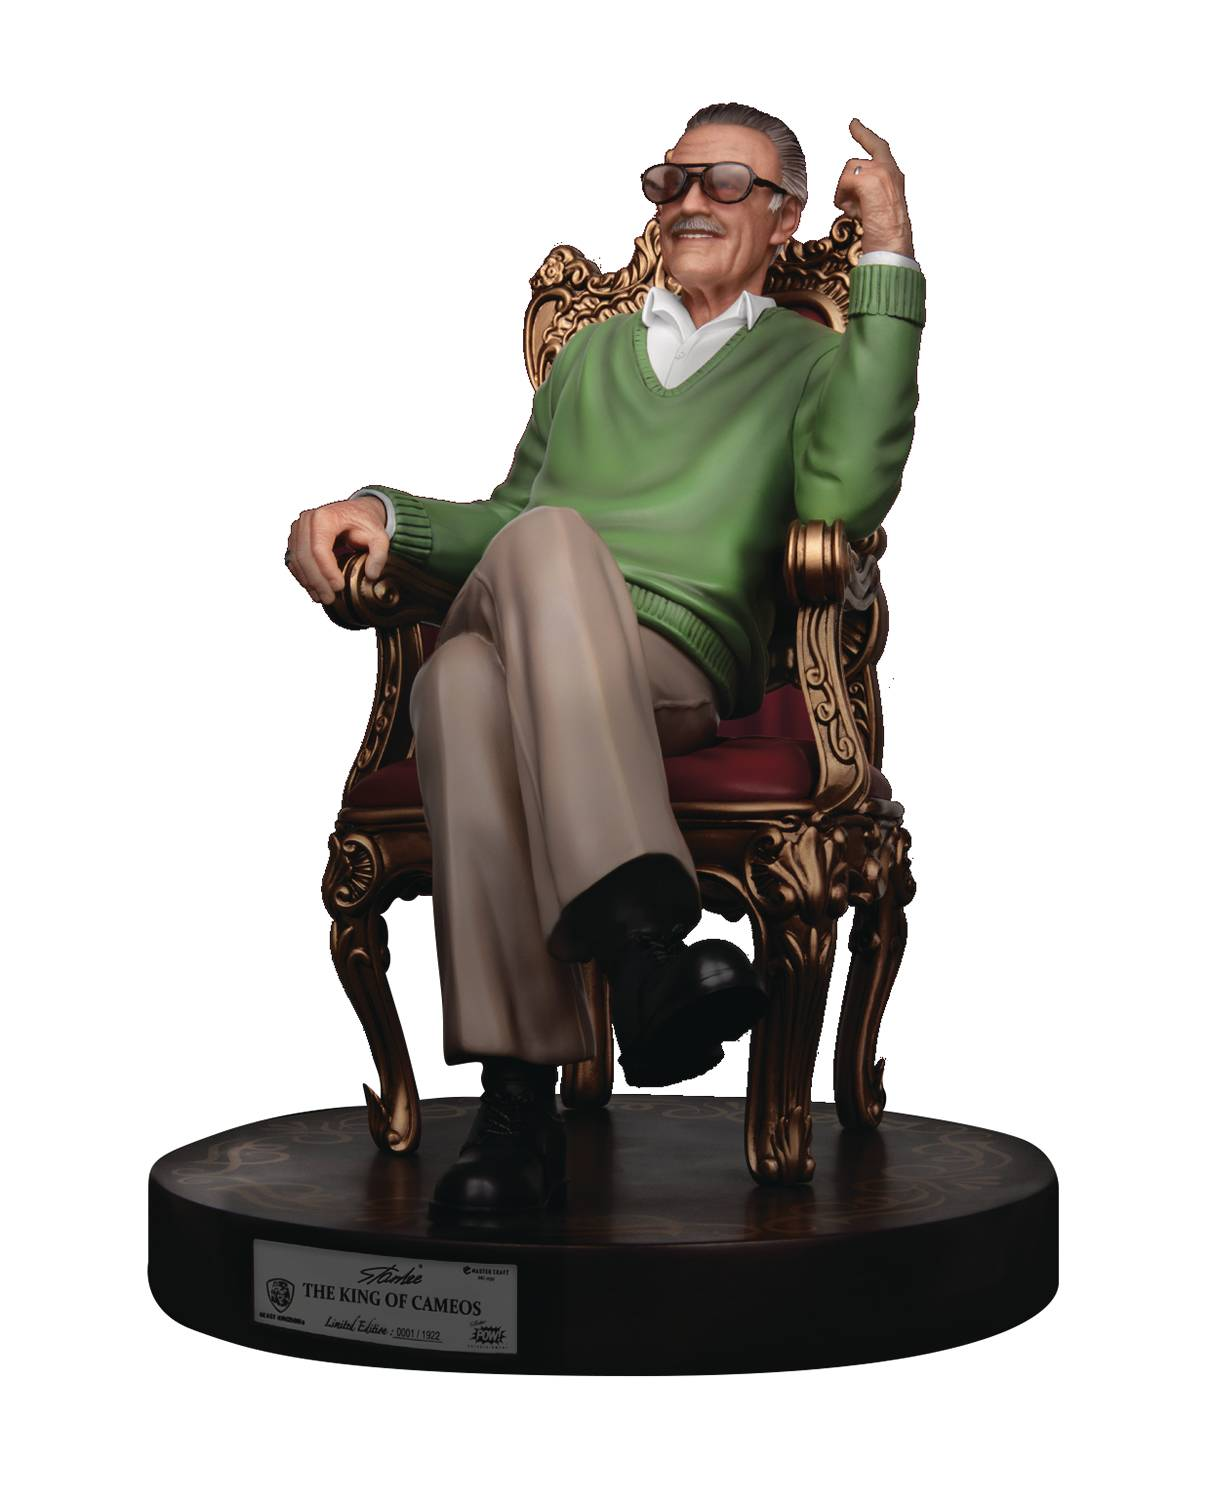 STAN LEE MC-030 THE KING OF CAMEOS MASTER CRAFT STATUE